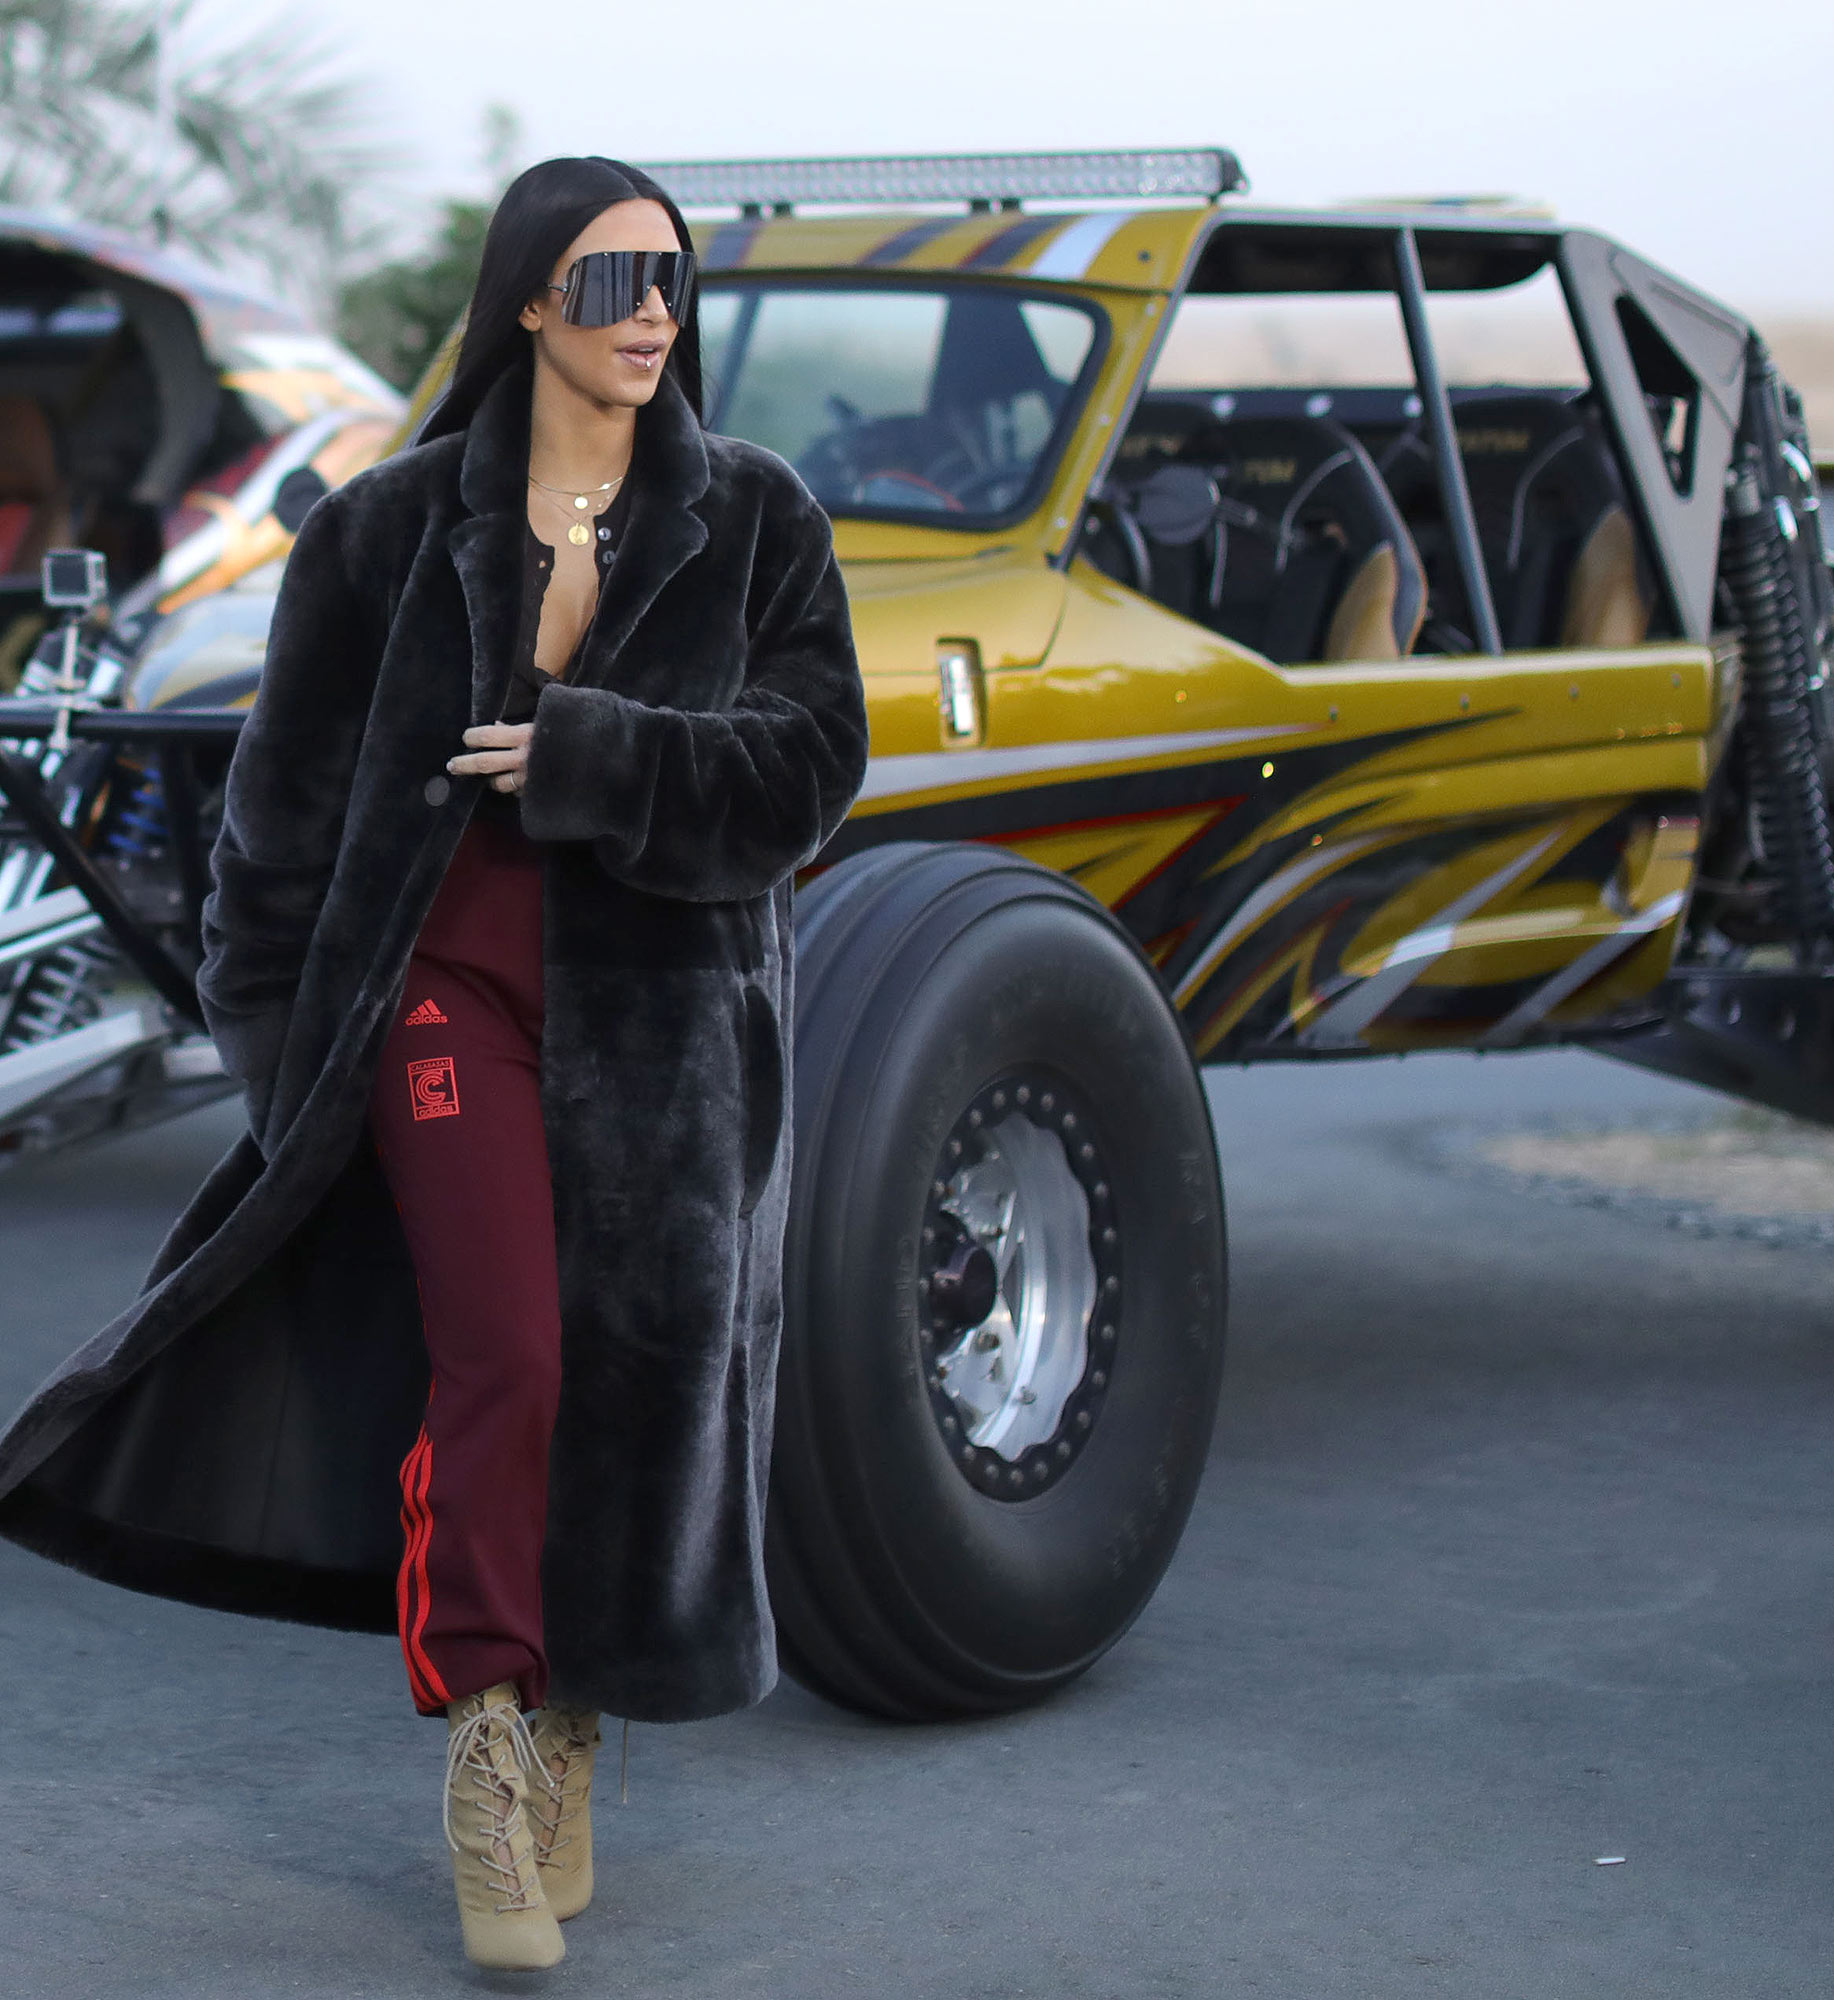 **EXCLUSIVE** Kim Kardashian goes ATV riding in the desert at sundown, is greeted by Royal family and hold exotic bird while touring Dubai for her first official overseas trip of 2017